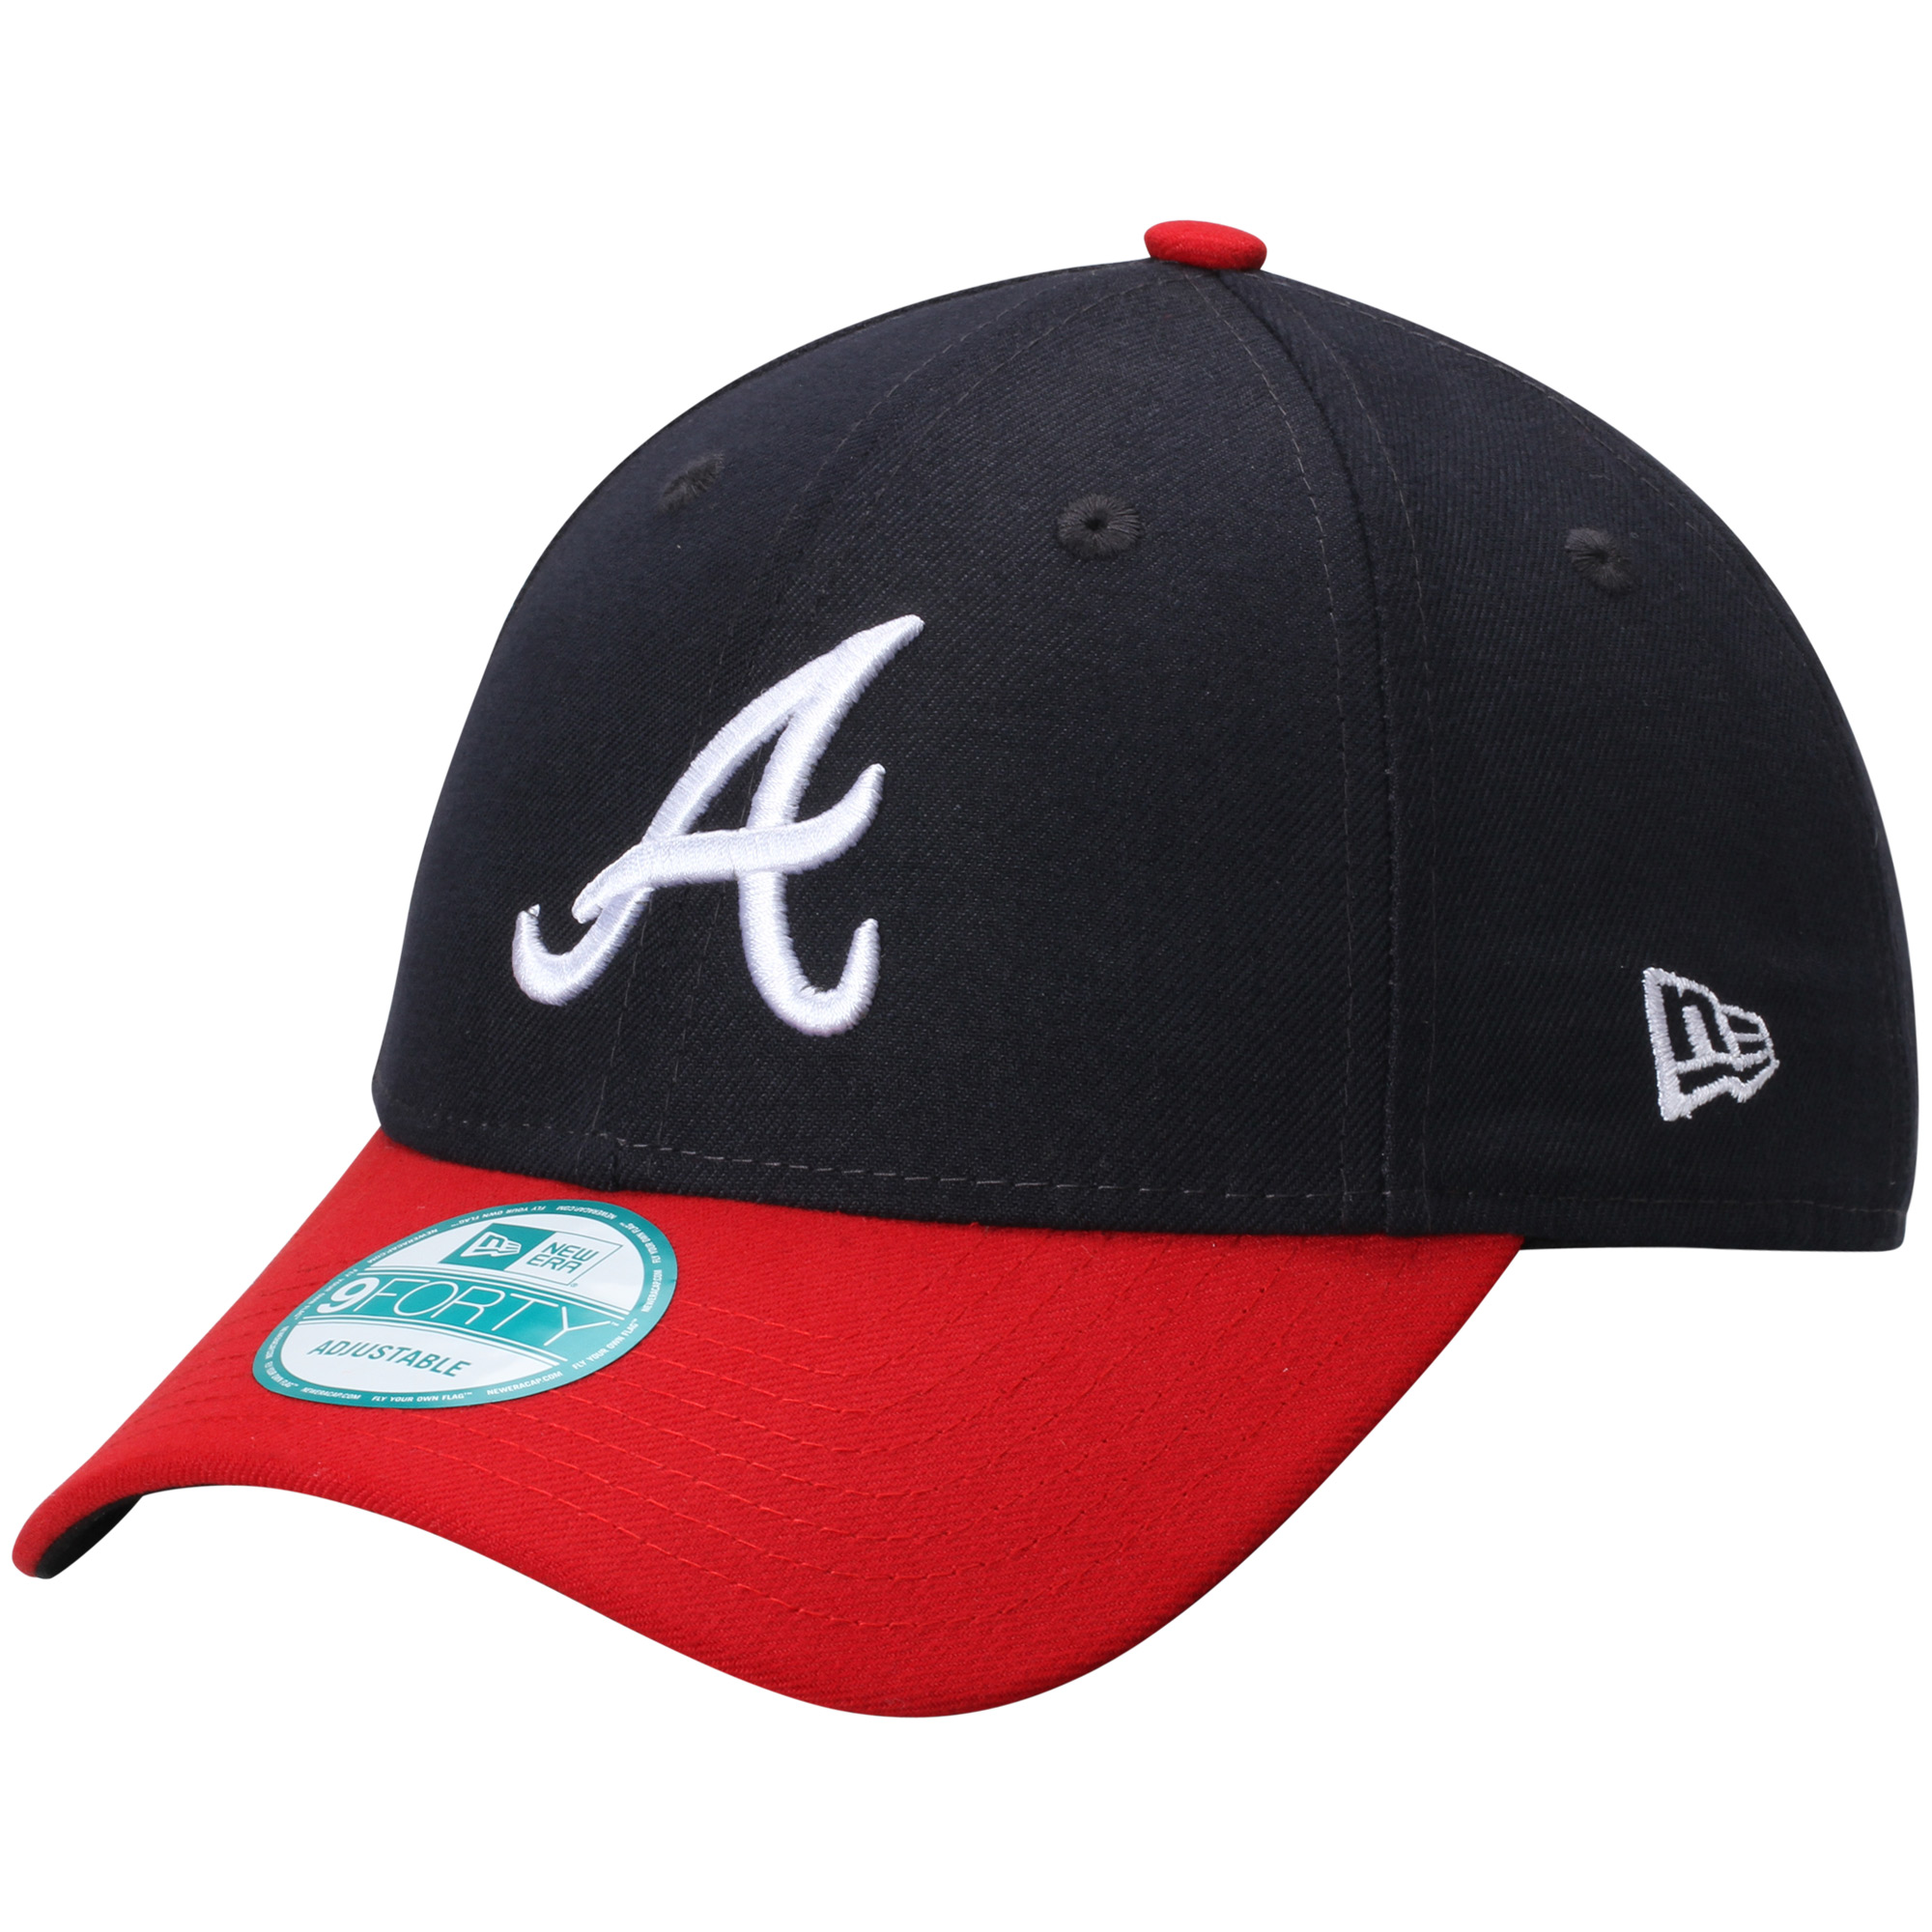 Atlanta Braves New Era Men's League 9FORTY Adjustable Hat - Red/Navy - OSFA